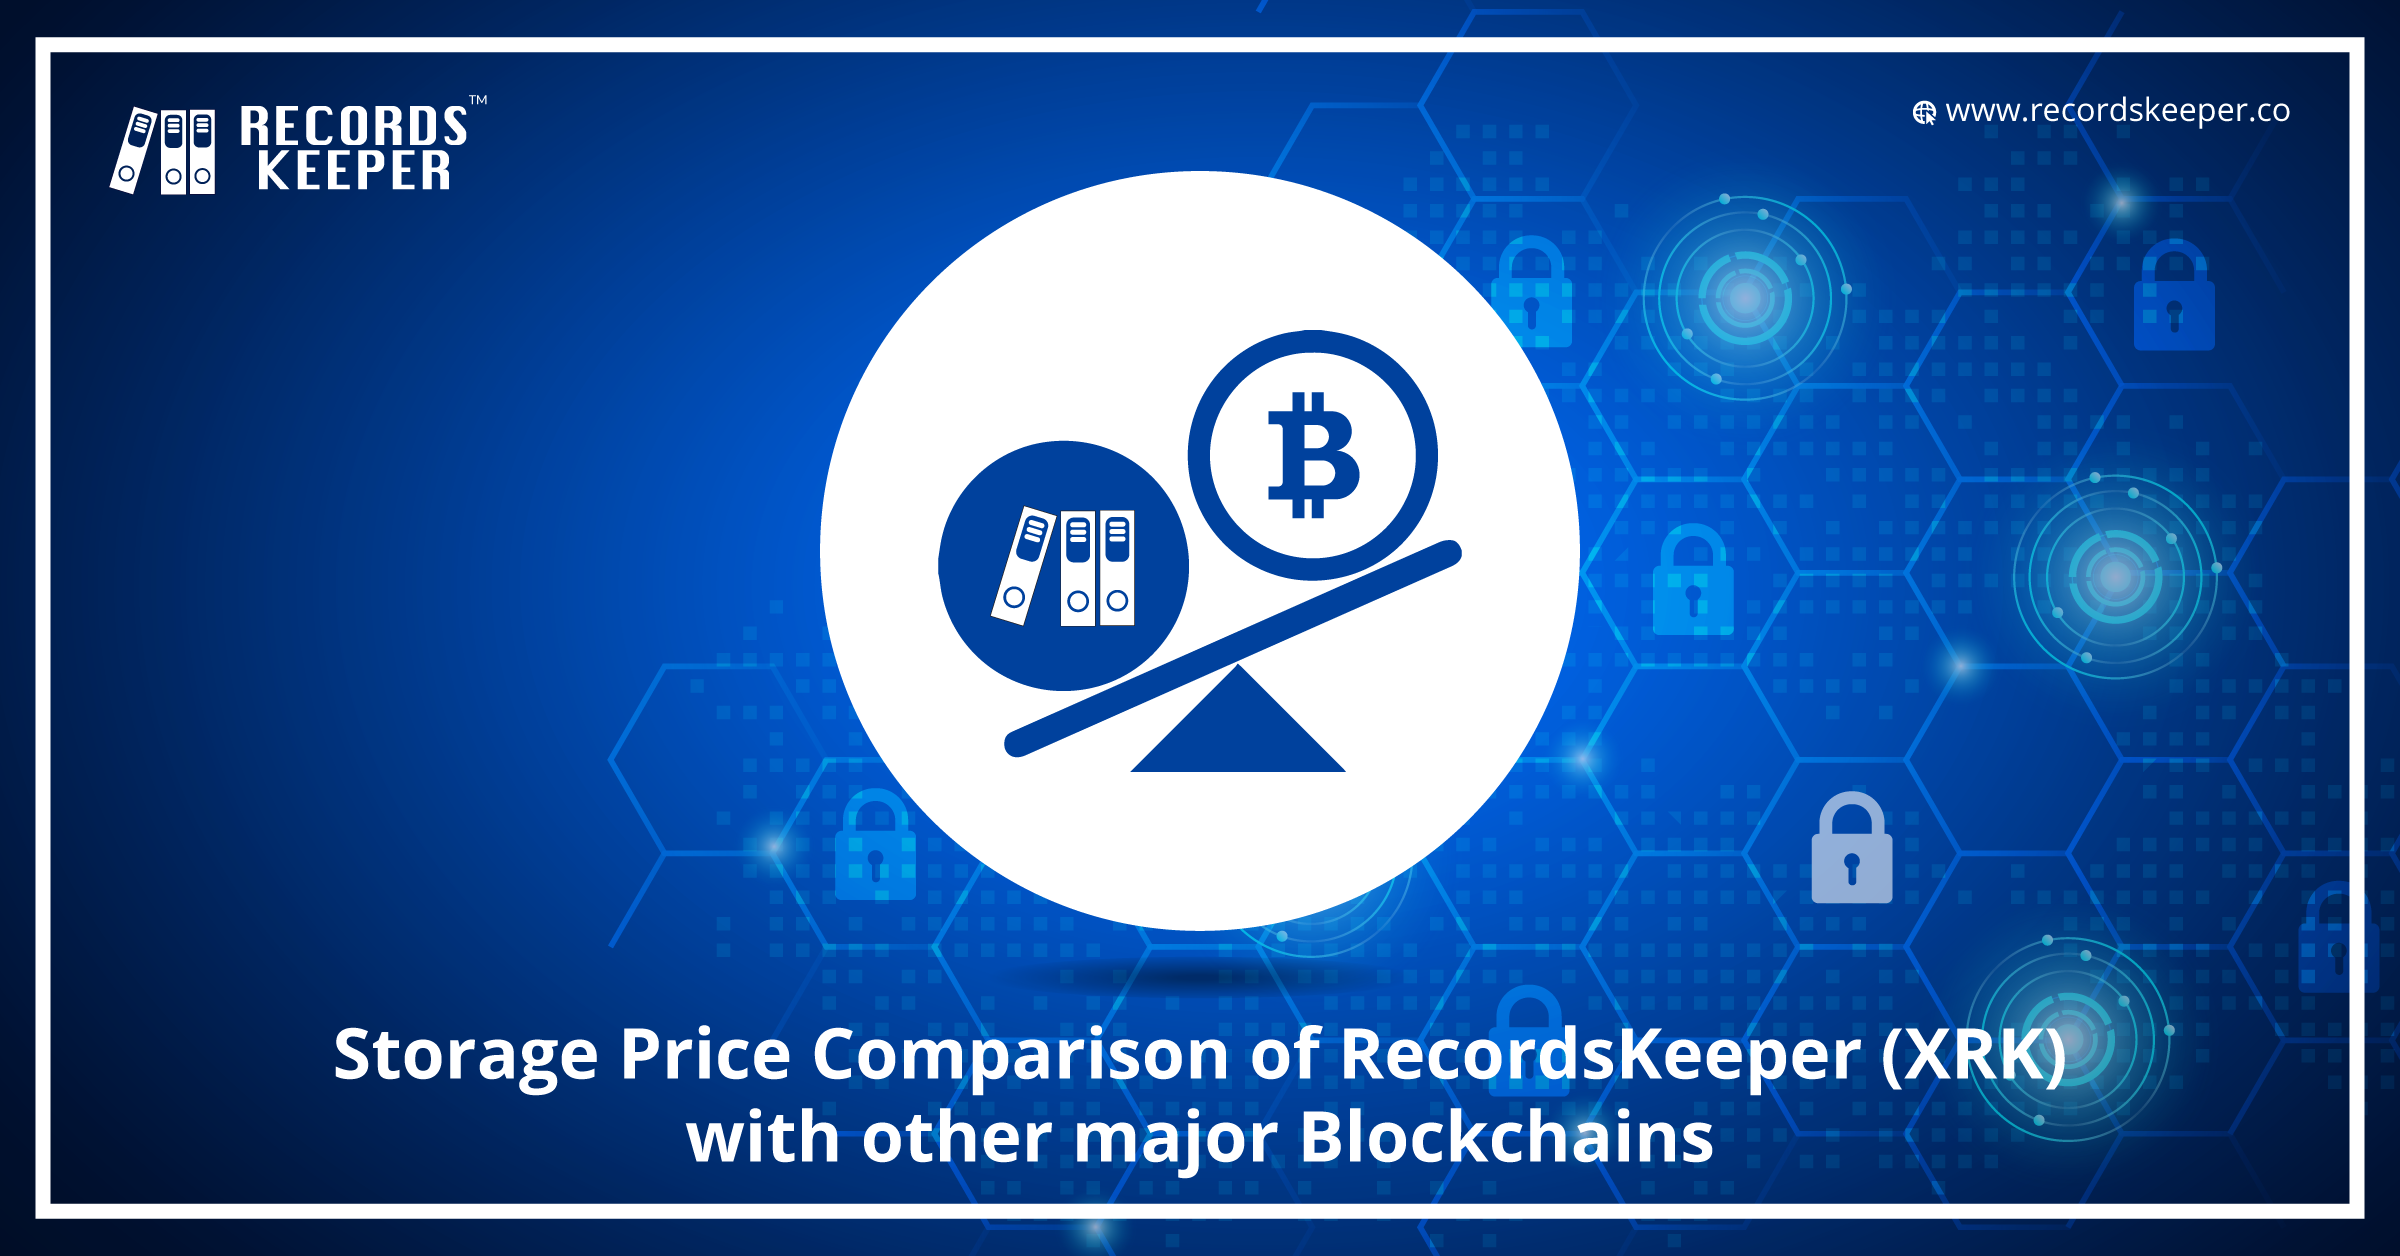 Storage Price Comparison of RecordsKeeper (XRK) with other major Blockchains